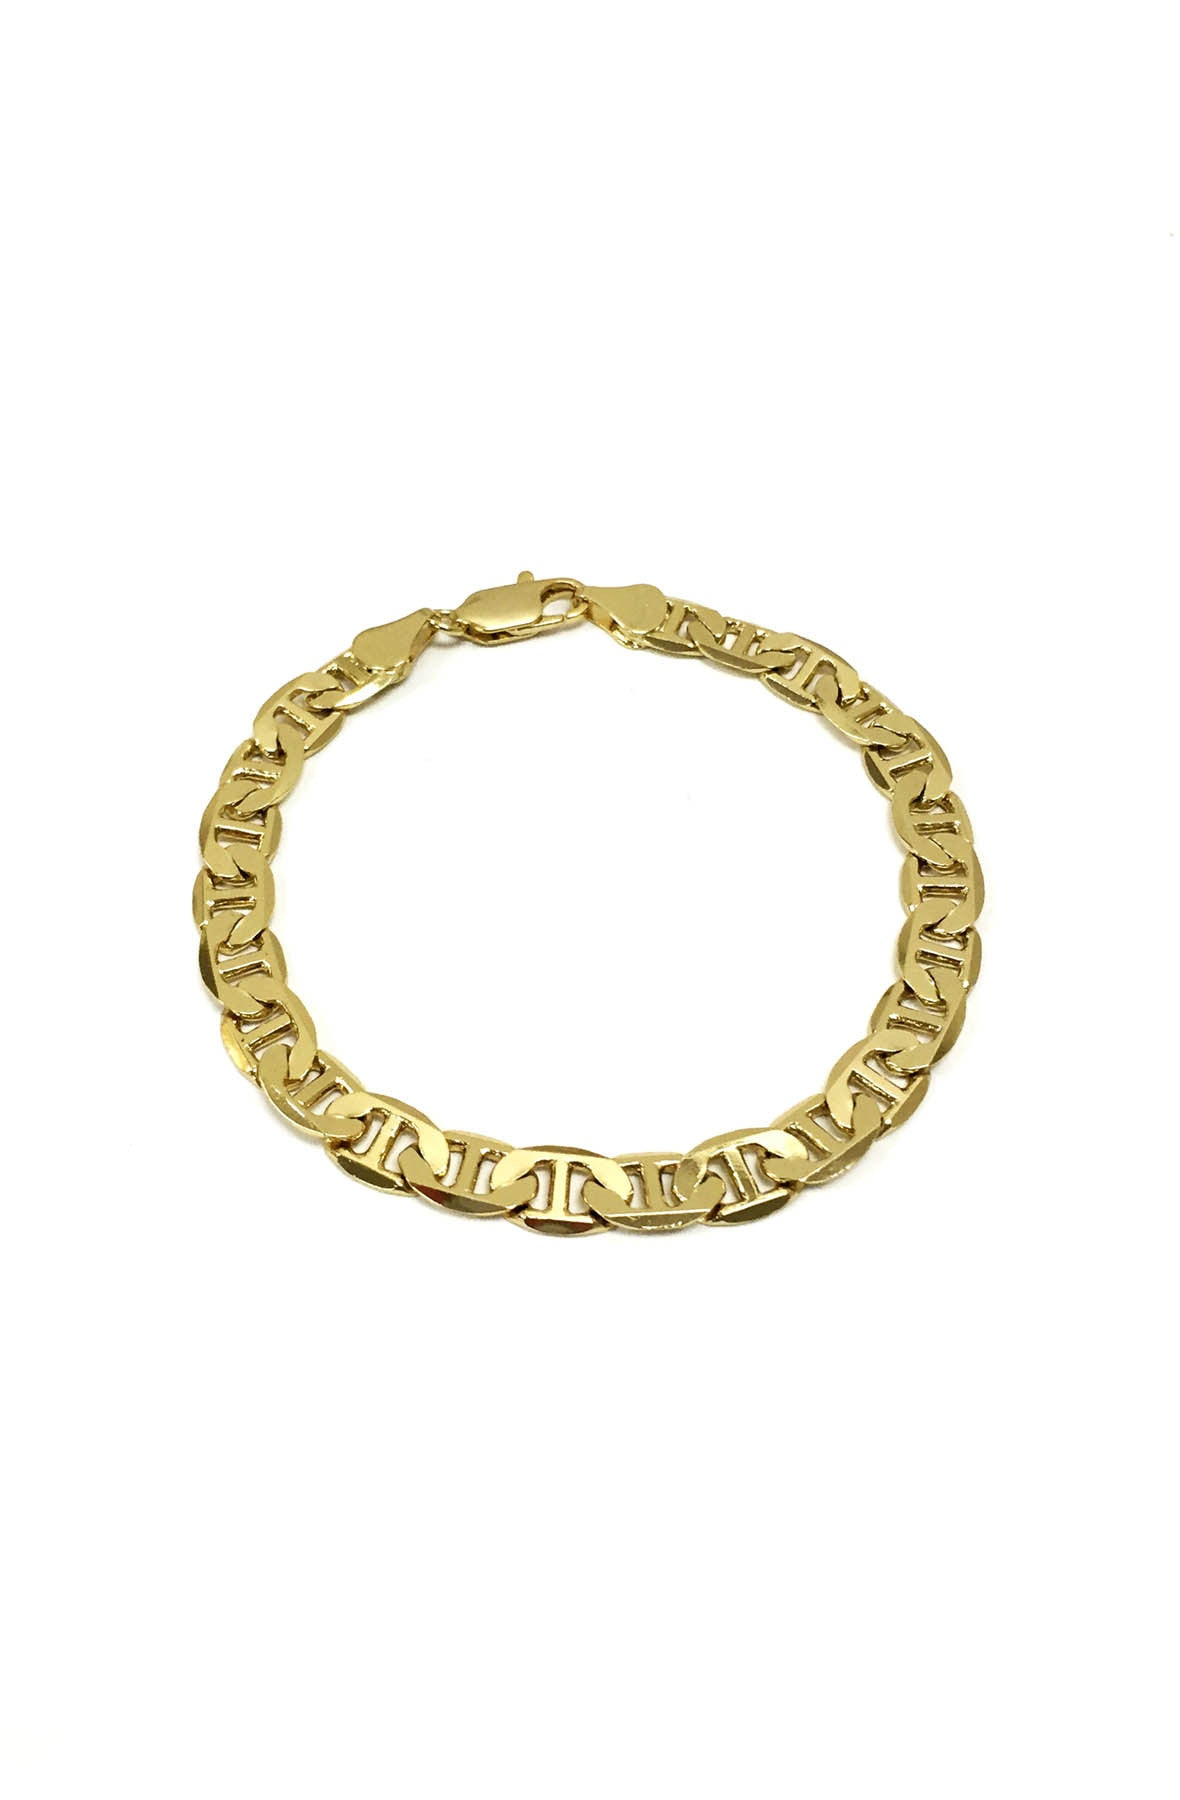 14k gold plated italian chain bracelet